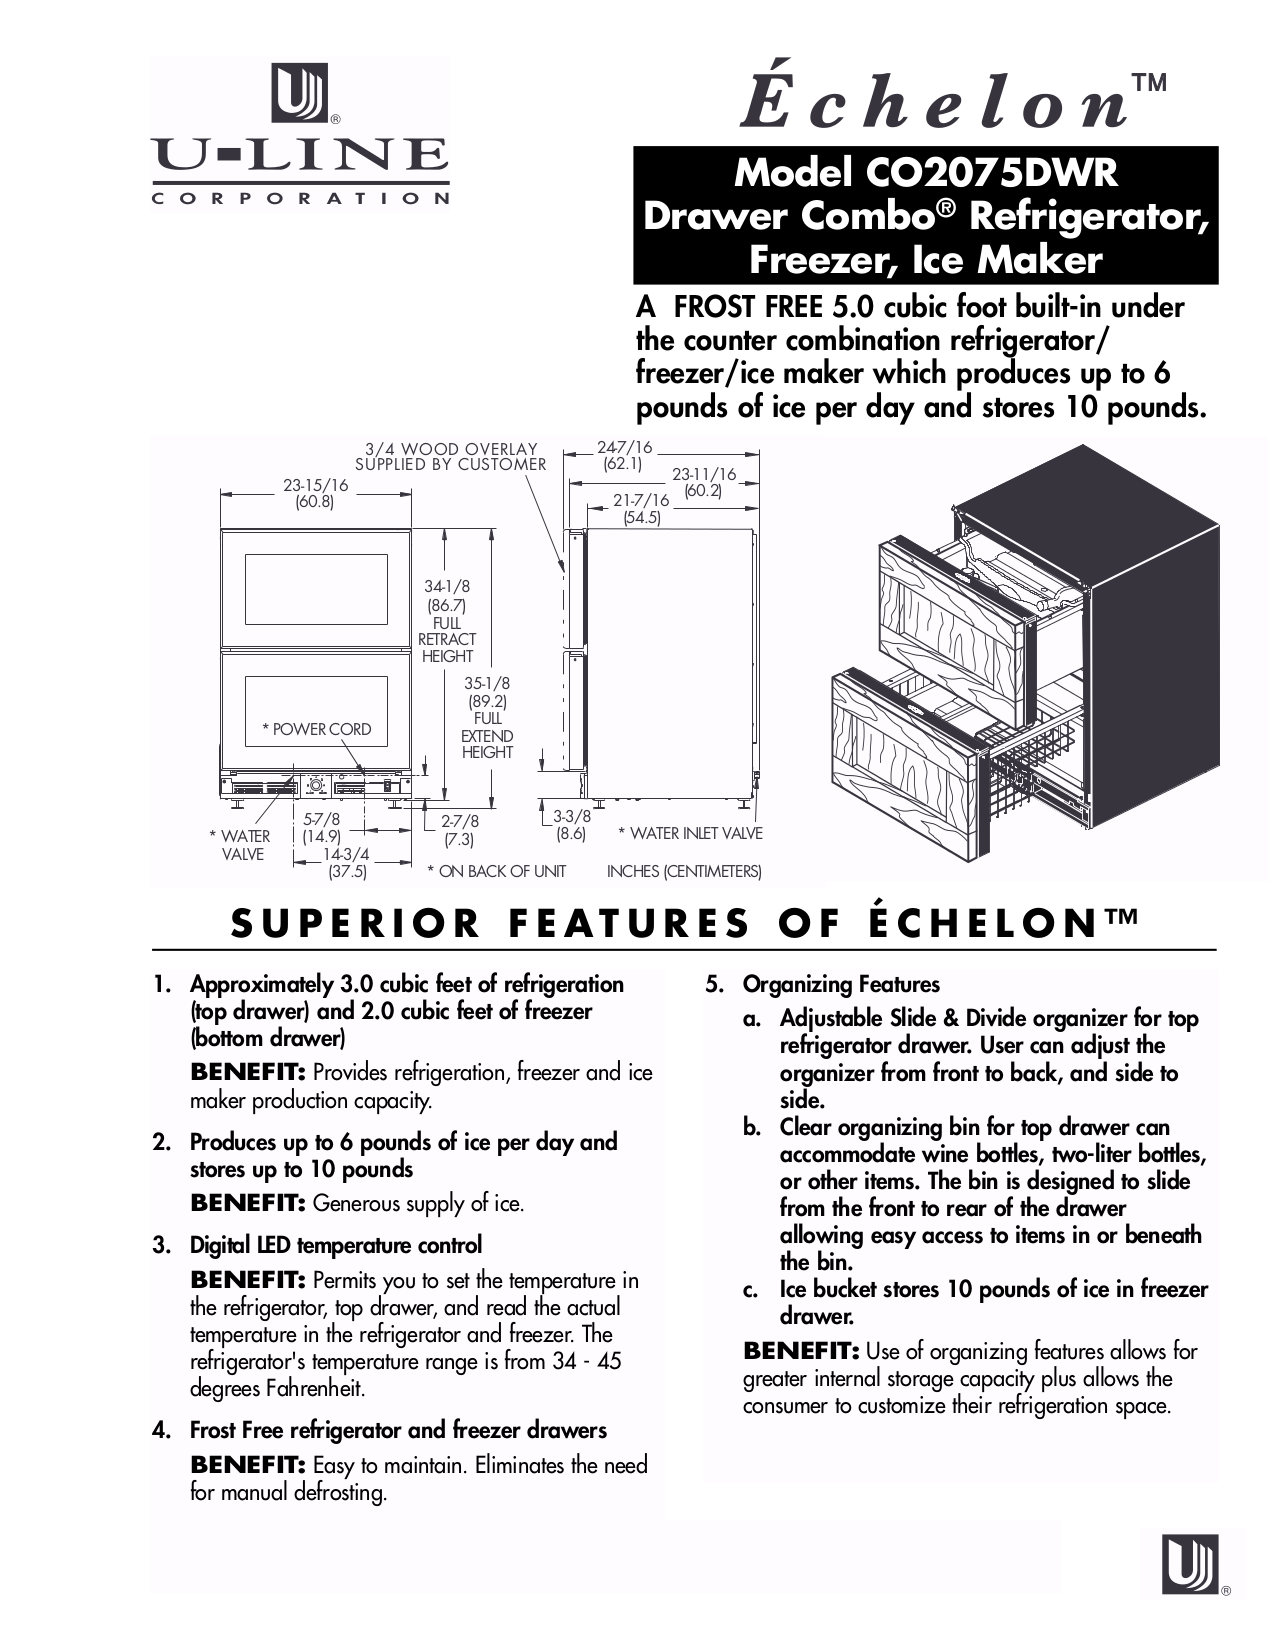 pdf for U-Line Refrigerator Echelon CO2075DWR manual